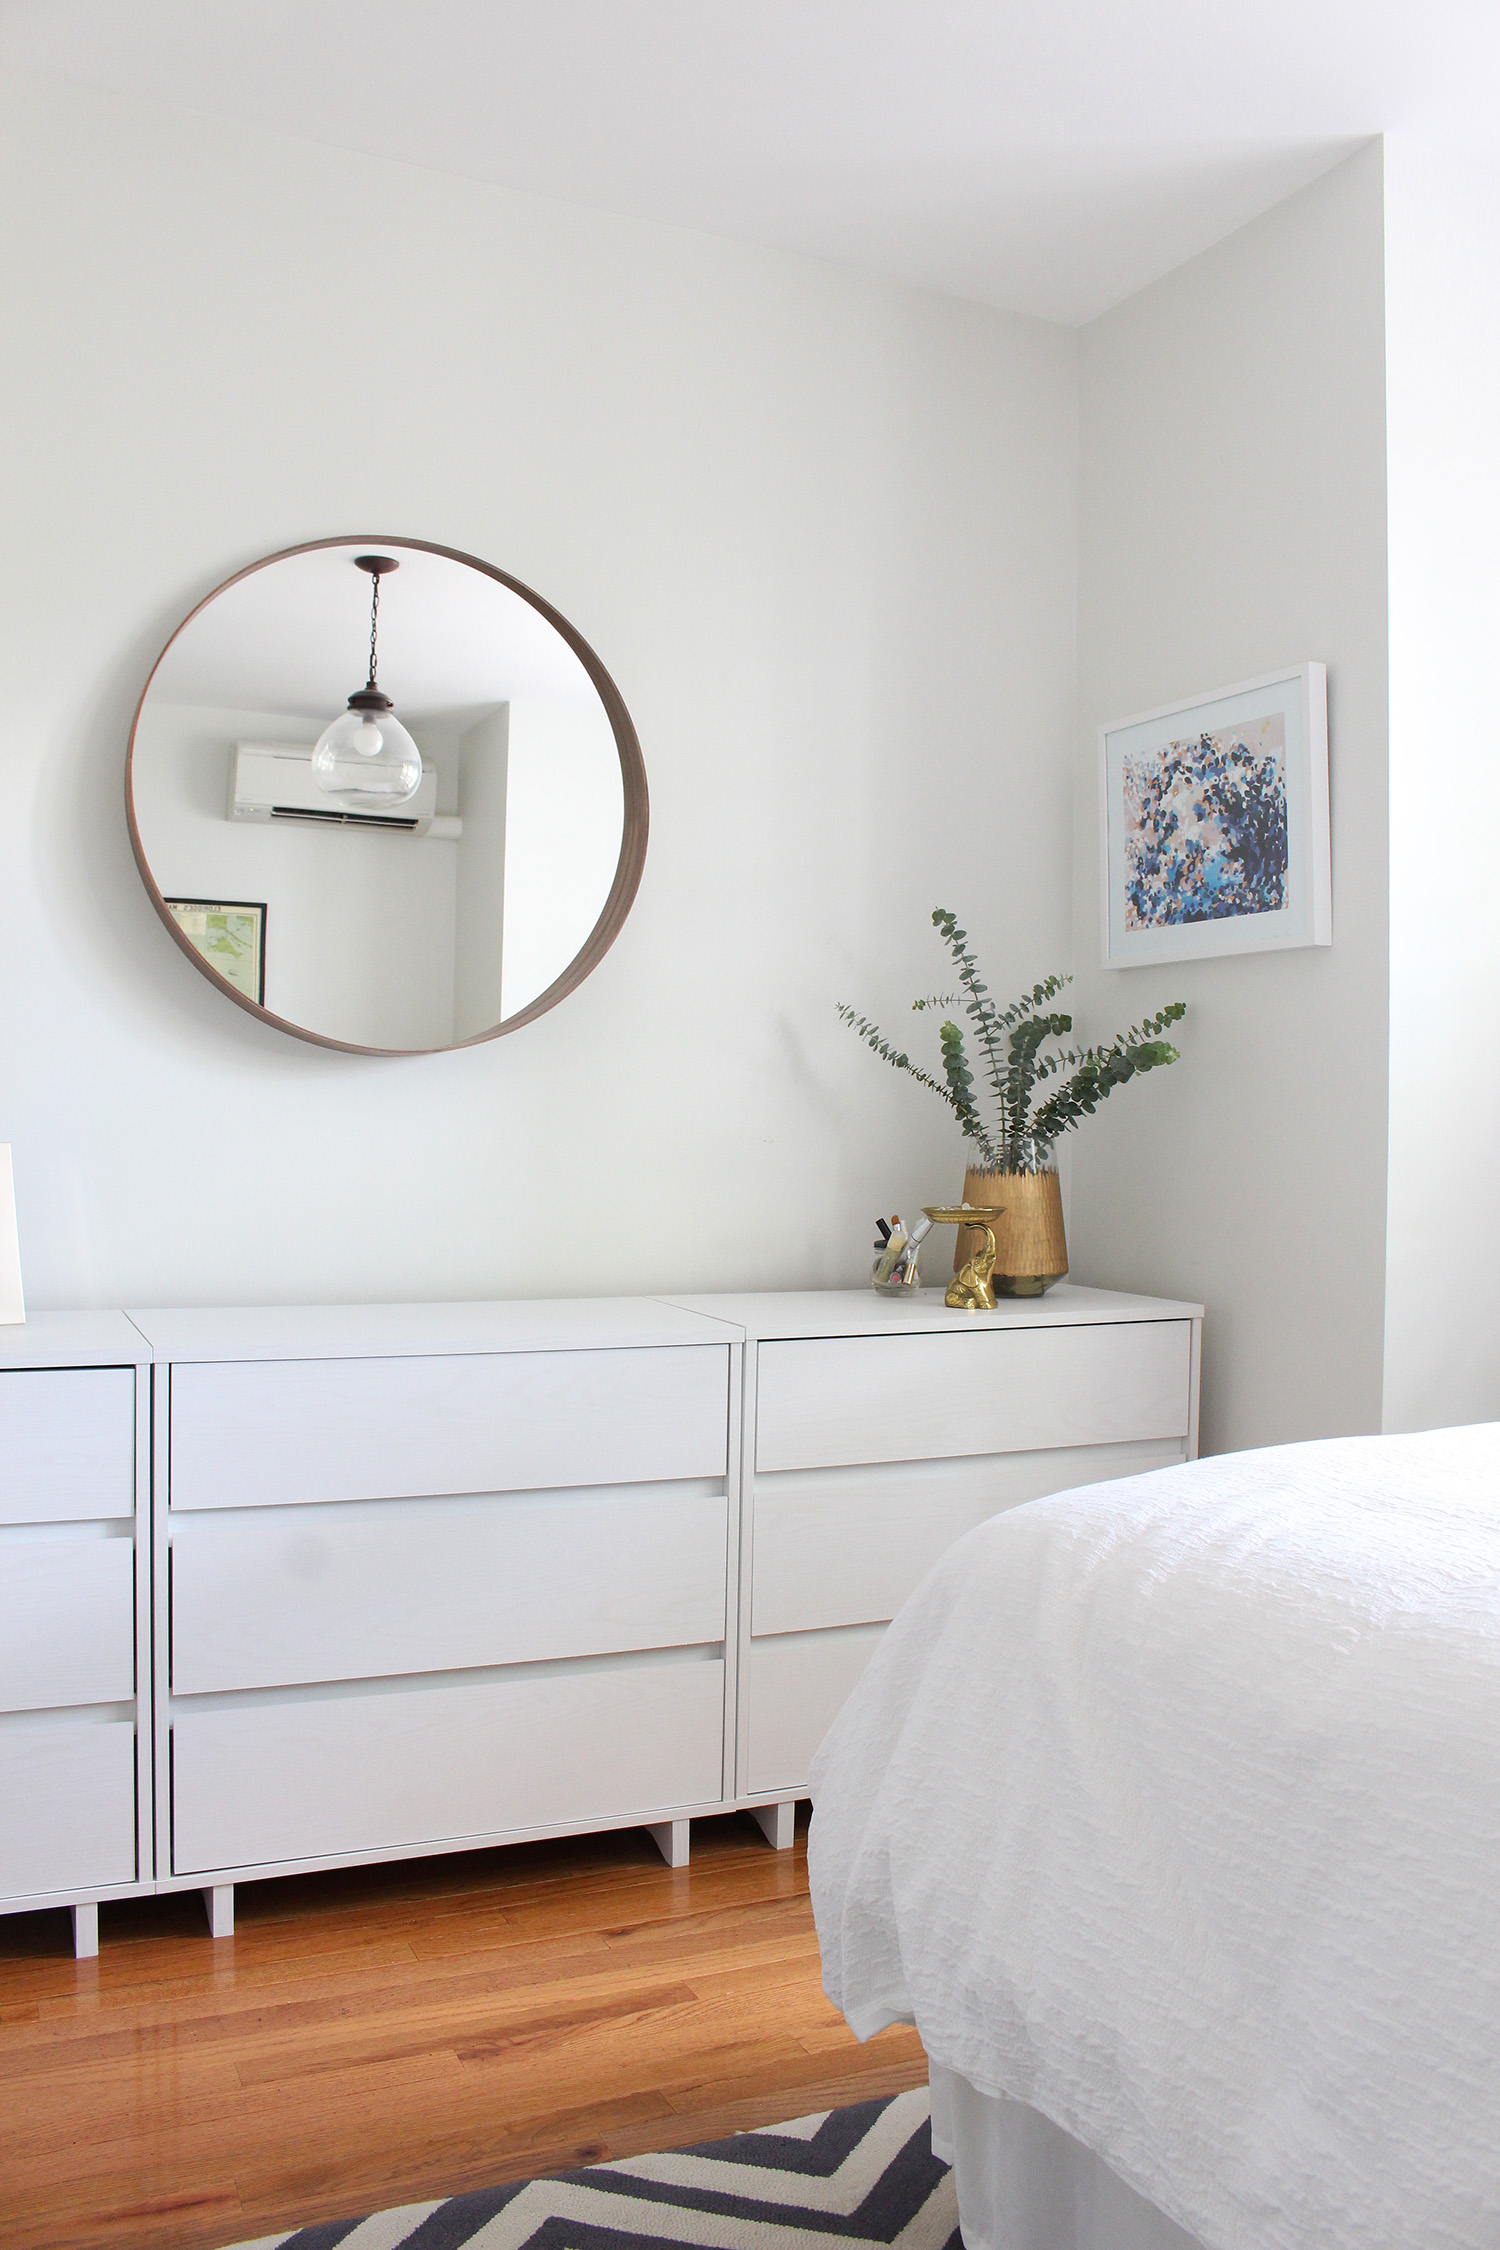 Art from Art Crate (Artist: Katie Craig) hangs over these modern, minimalist dressers.